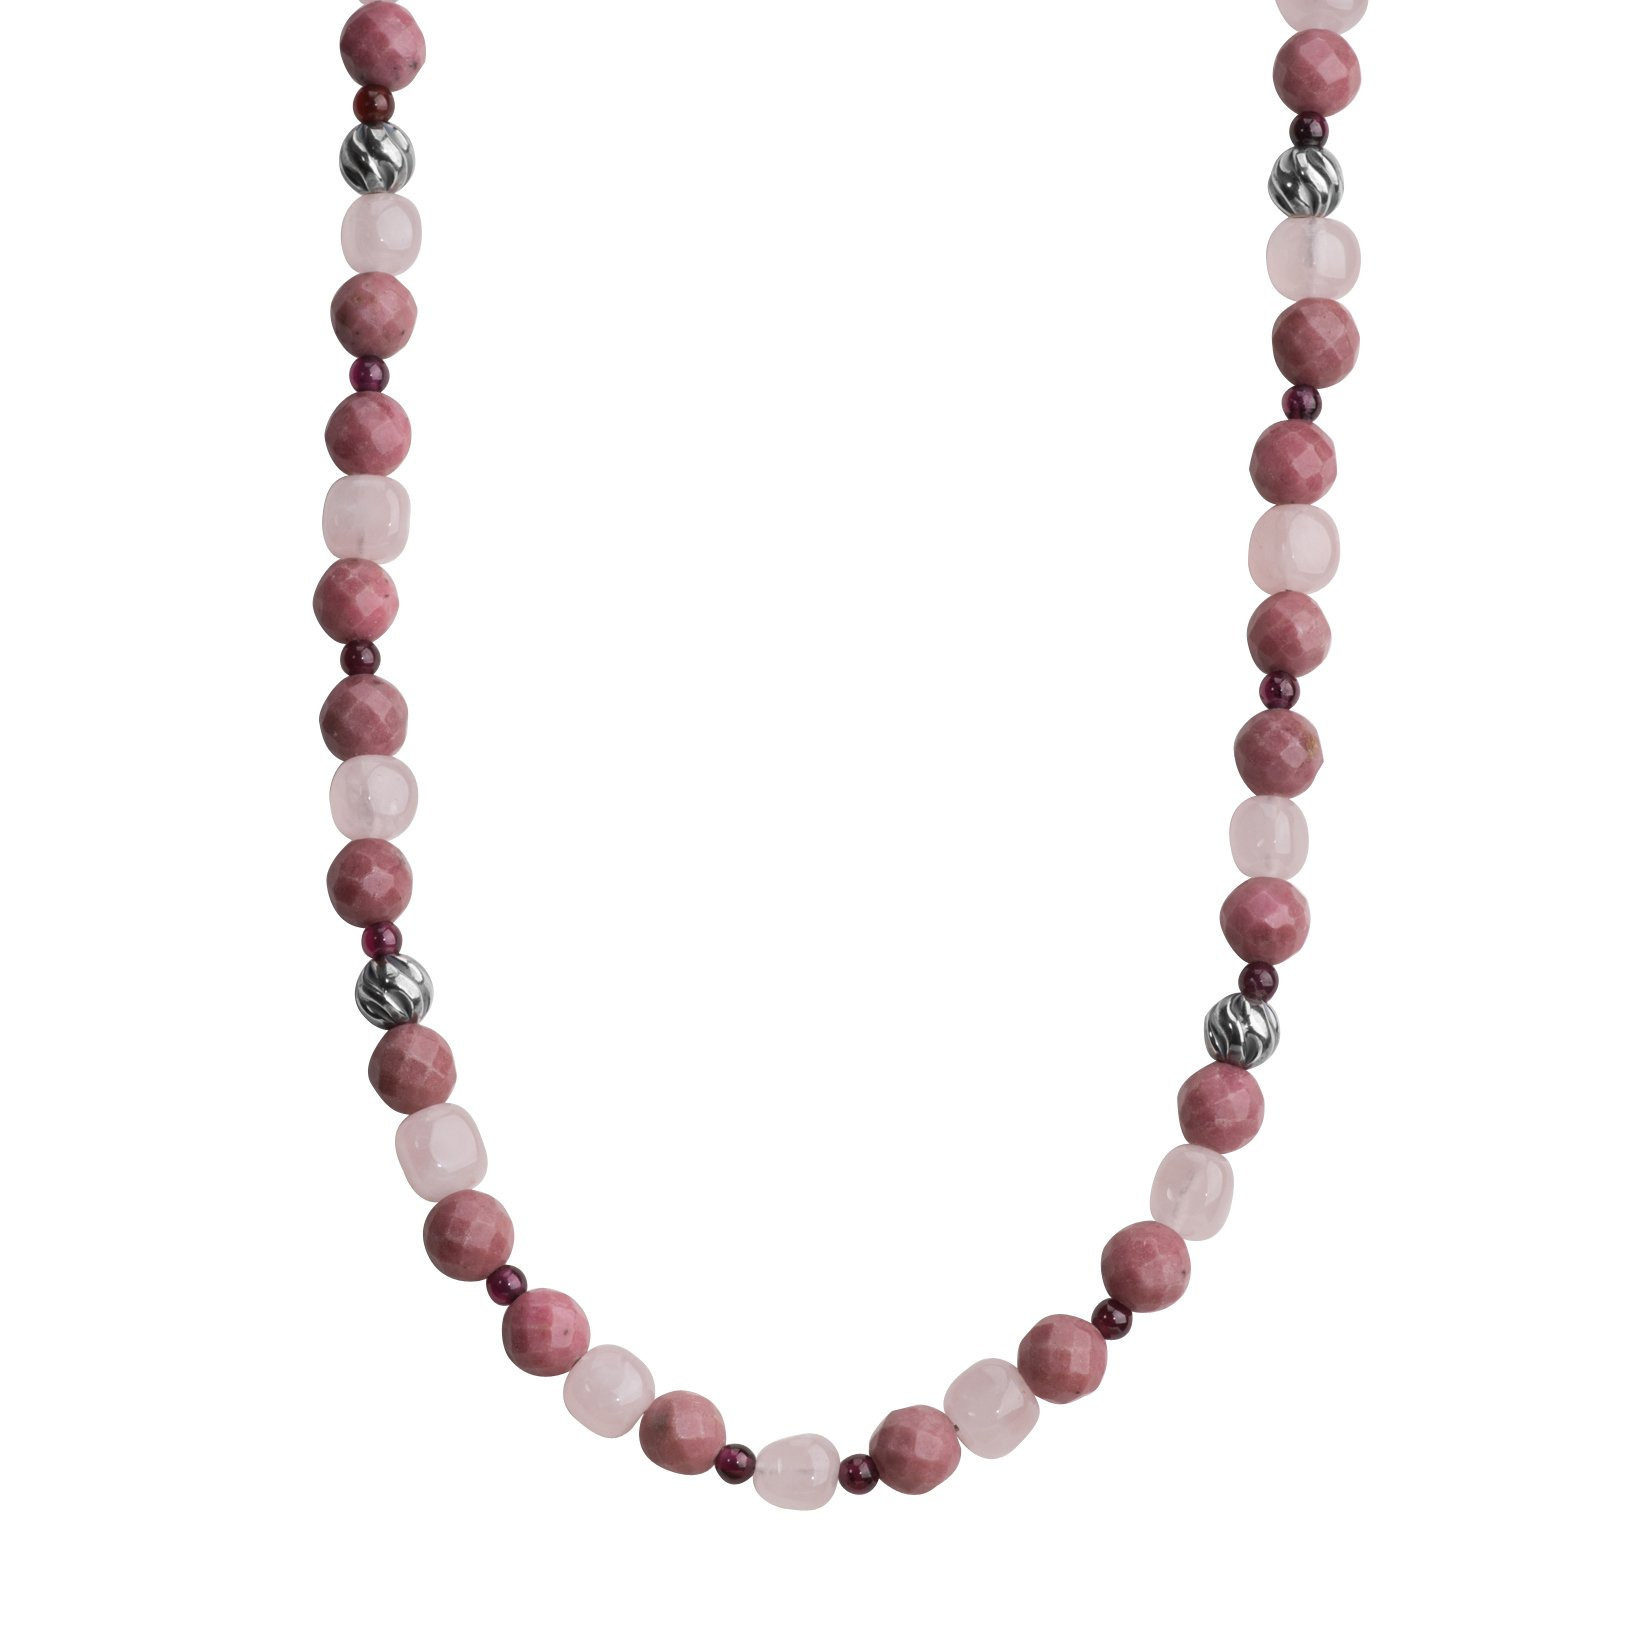 Carolyn Pollack Sterling Silver Shades of Pink Beaded Necklace, 30'' by Carolyn Pollack